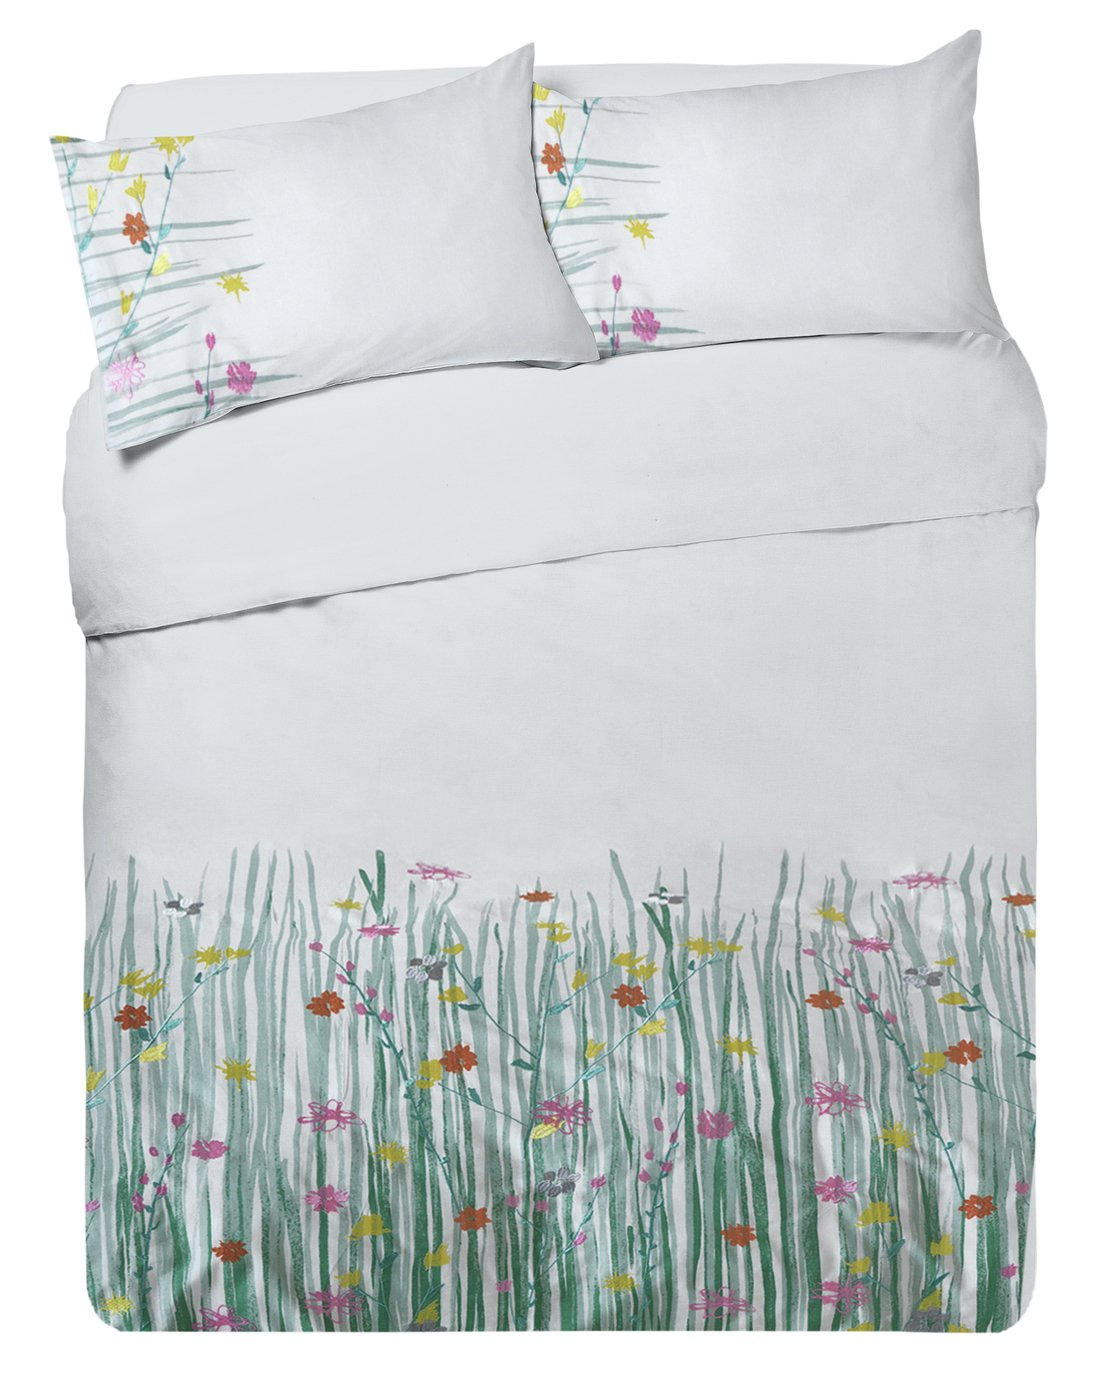 Argos Home Summer Meadow Bedding Set - Double